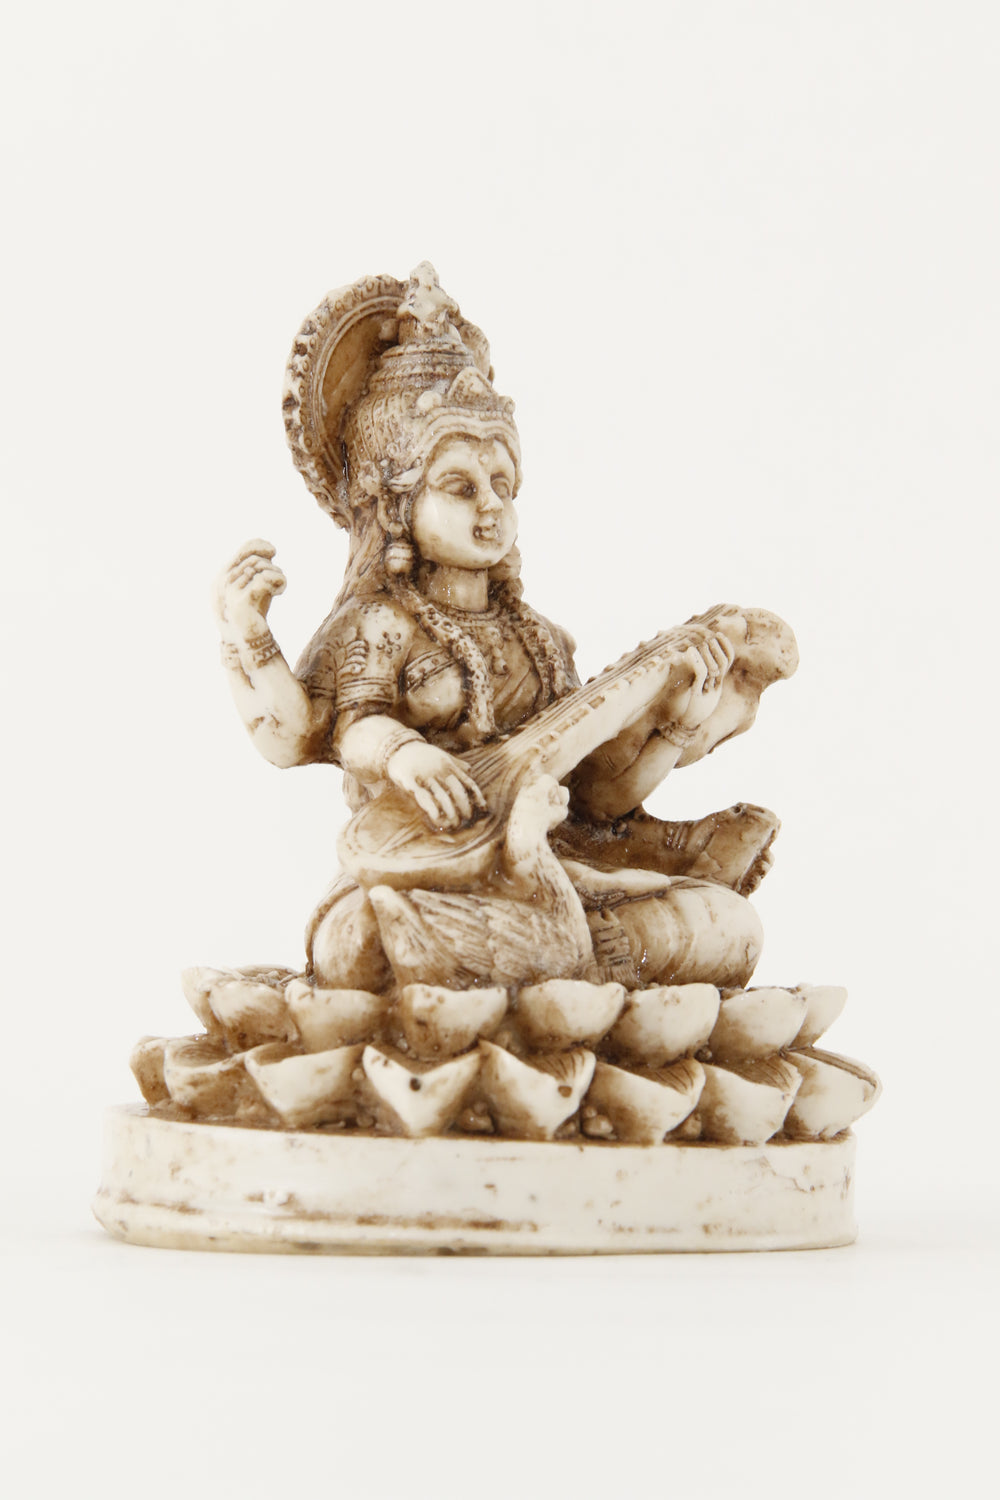 GODDESS SARASWATI STATUE OFF-WHITE SMALL SIZE SIDE VIEW